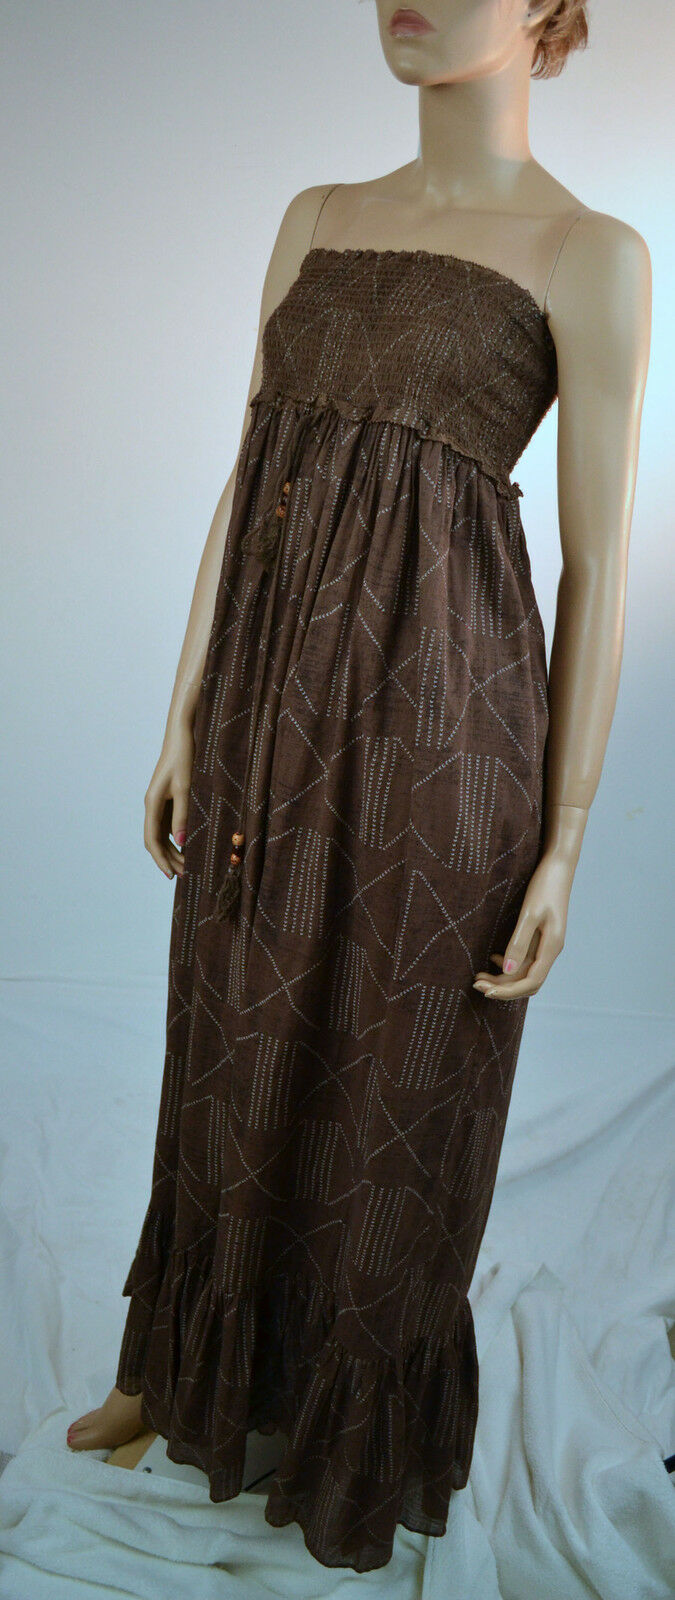 Ralph Lauren braun Halter Cotton Dress Beaded Tassles -Sz Med-NWT Retail